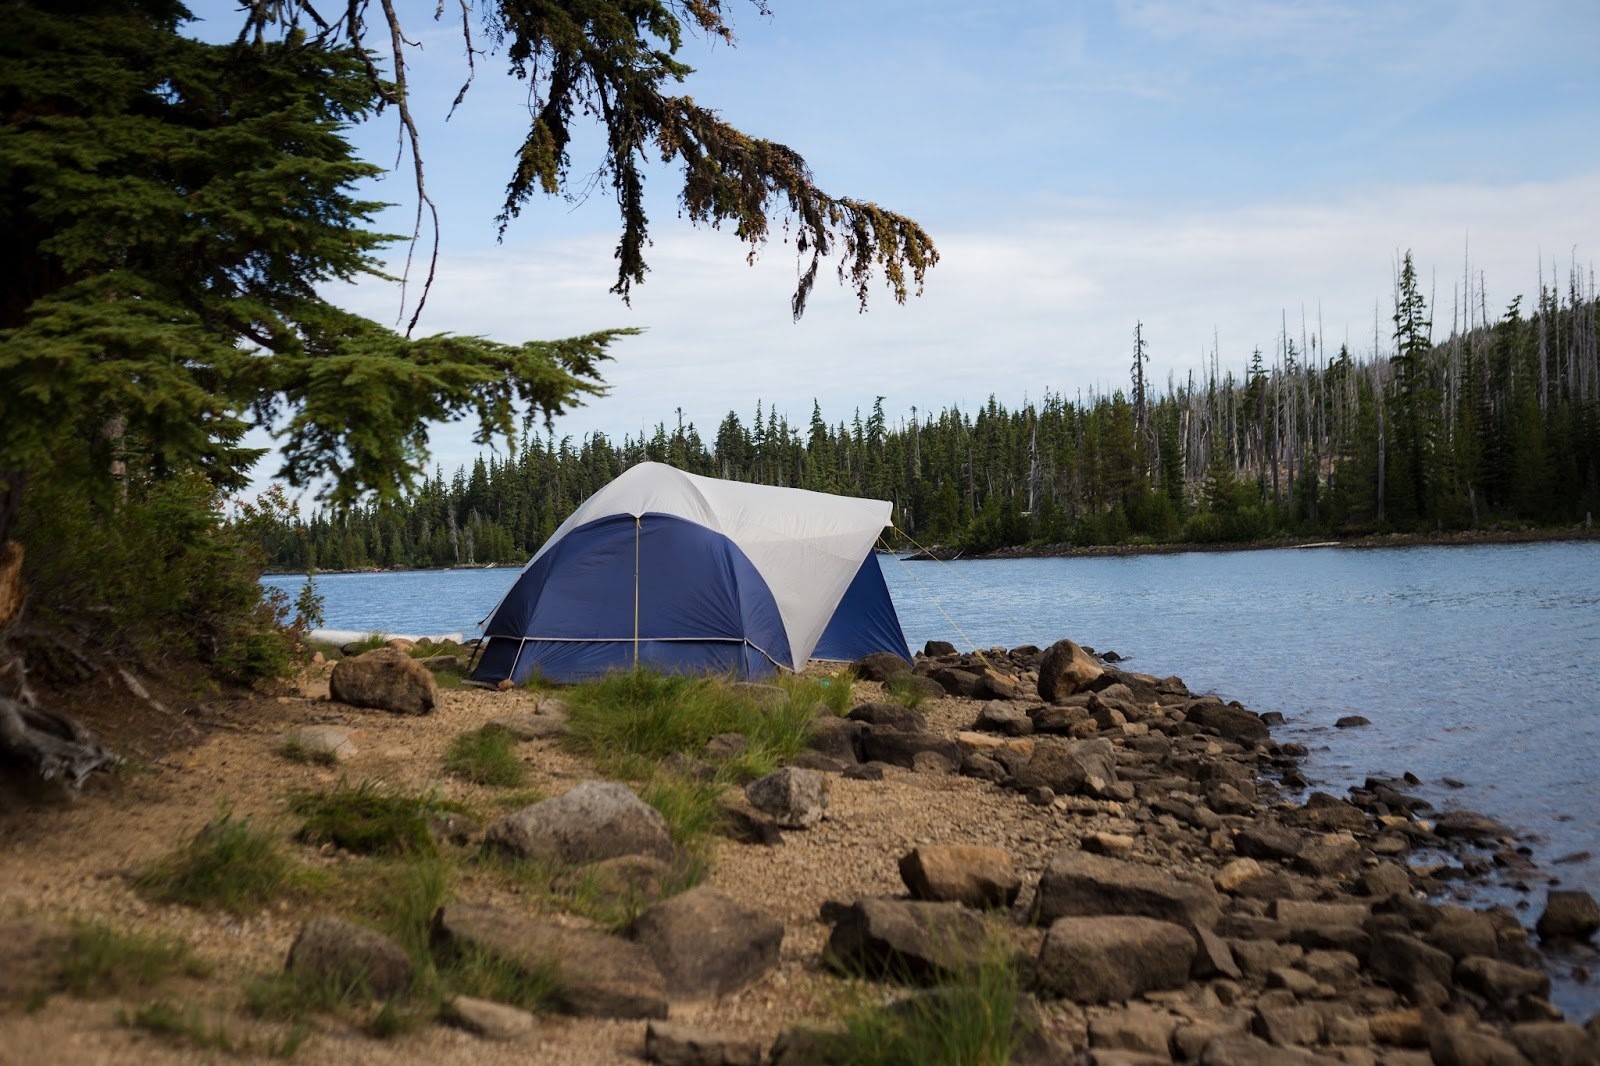 Visit Olallie Lake: 6 Campgrounds to Consider for Your Next Nature Excursion